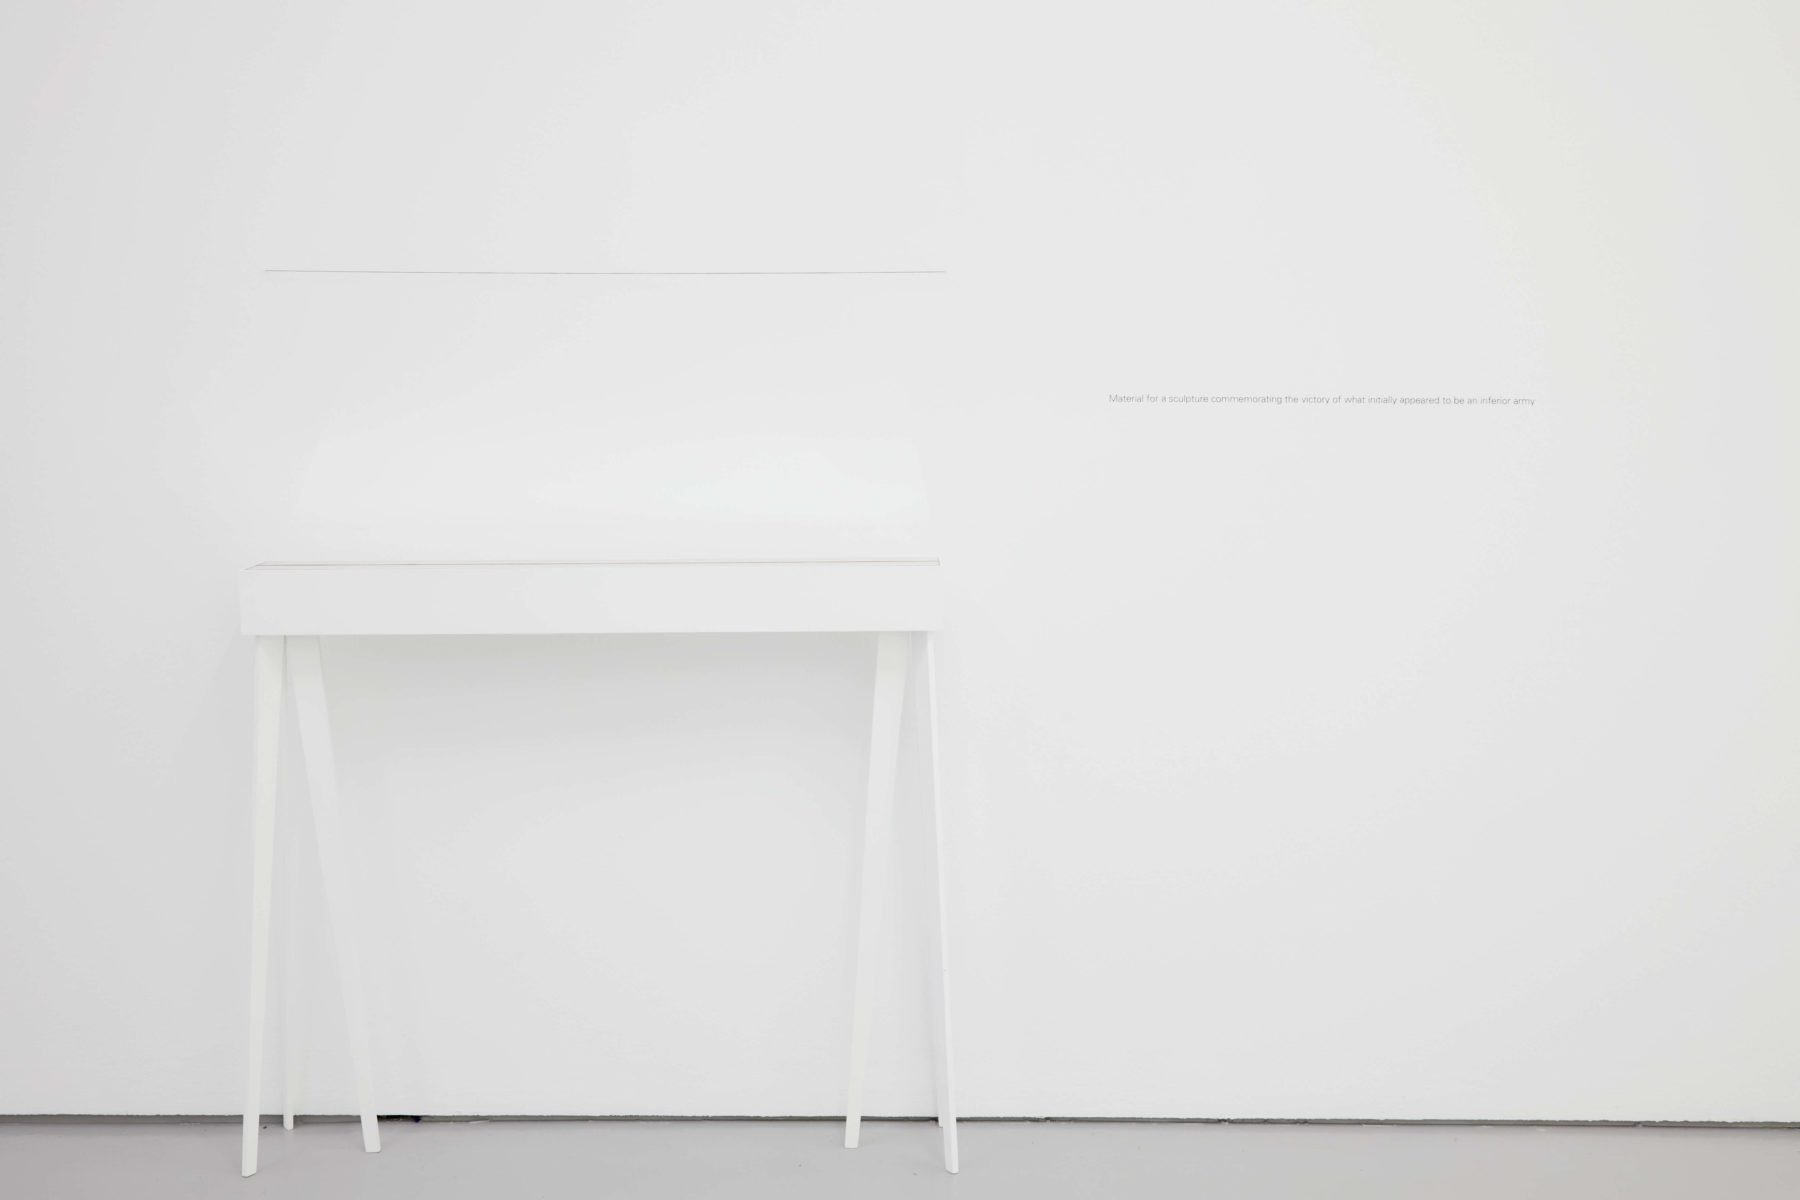 Iman Issa's solo exhibition Material for 2018 at Spike Island ab1ca8c7aeda